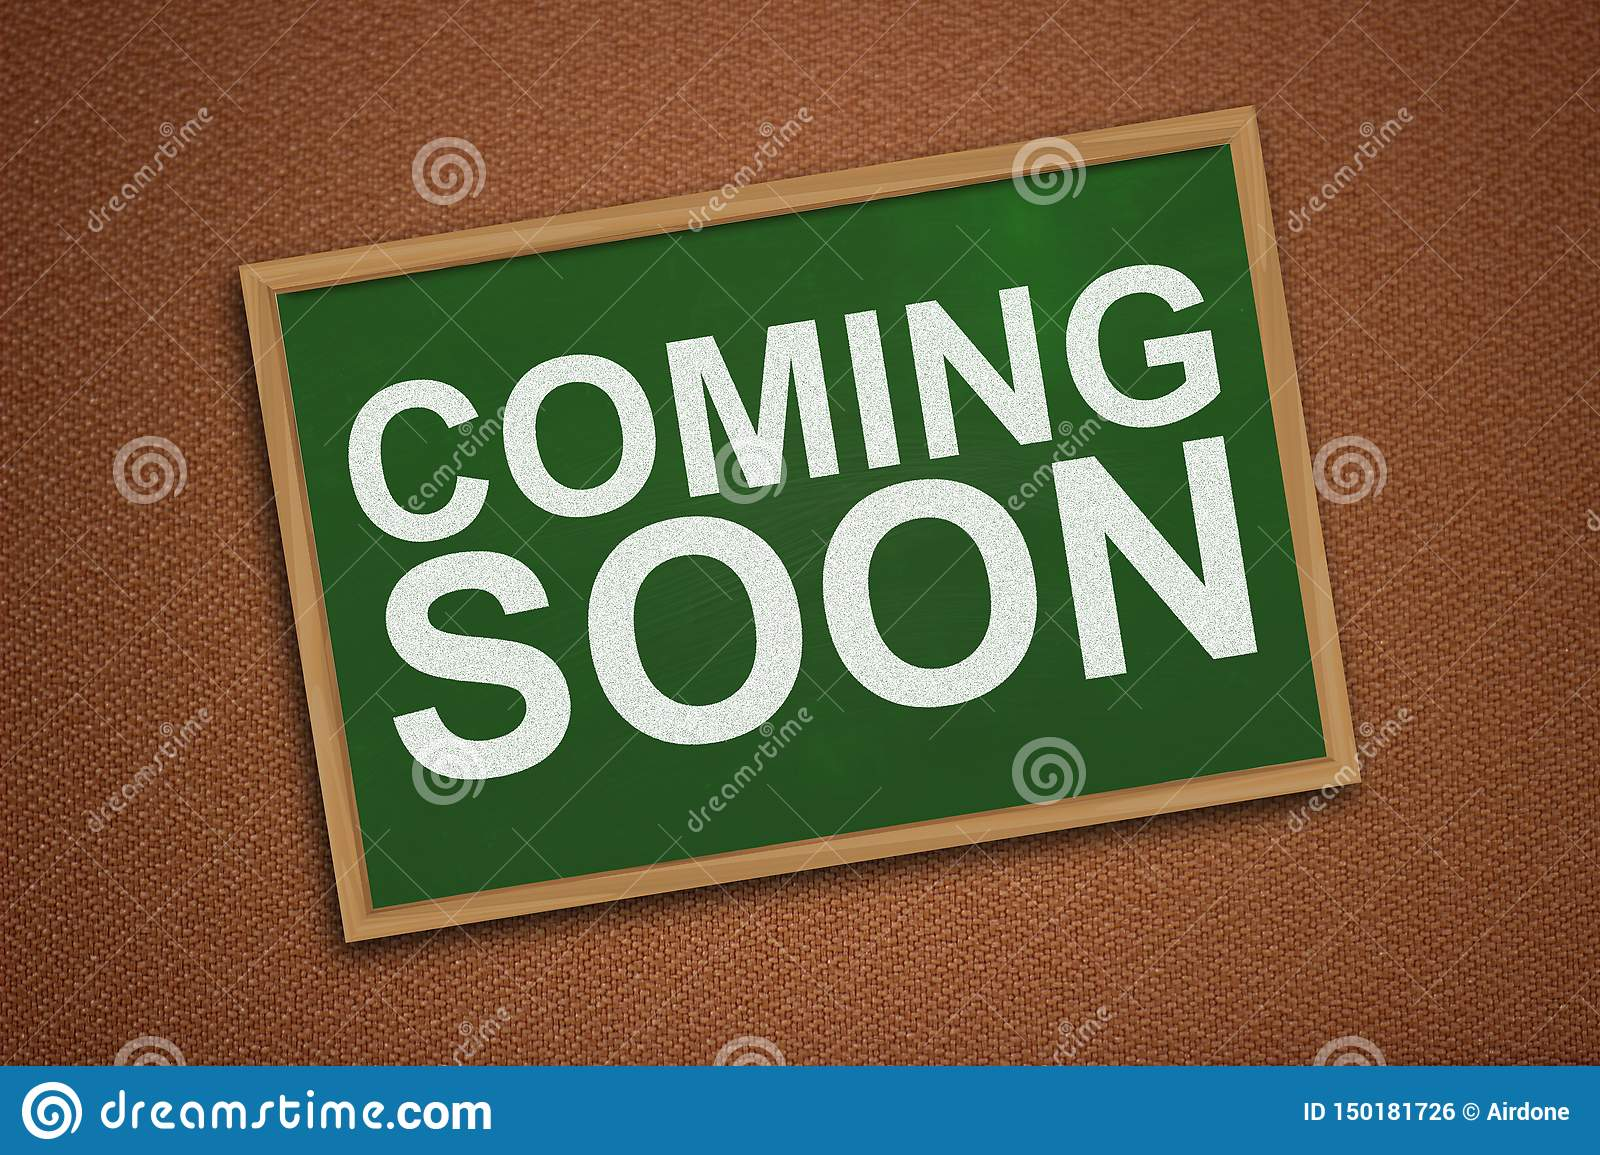 Coming Soon Words Typography Concept Stock Photo Image Of Promotion Communication 150181726